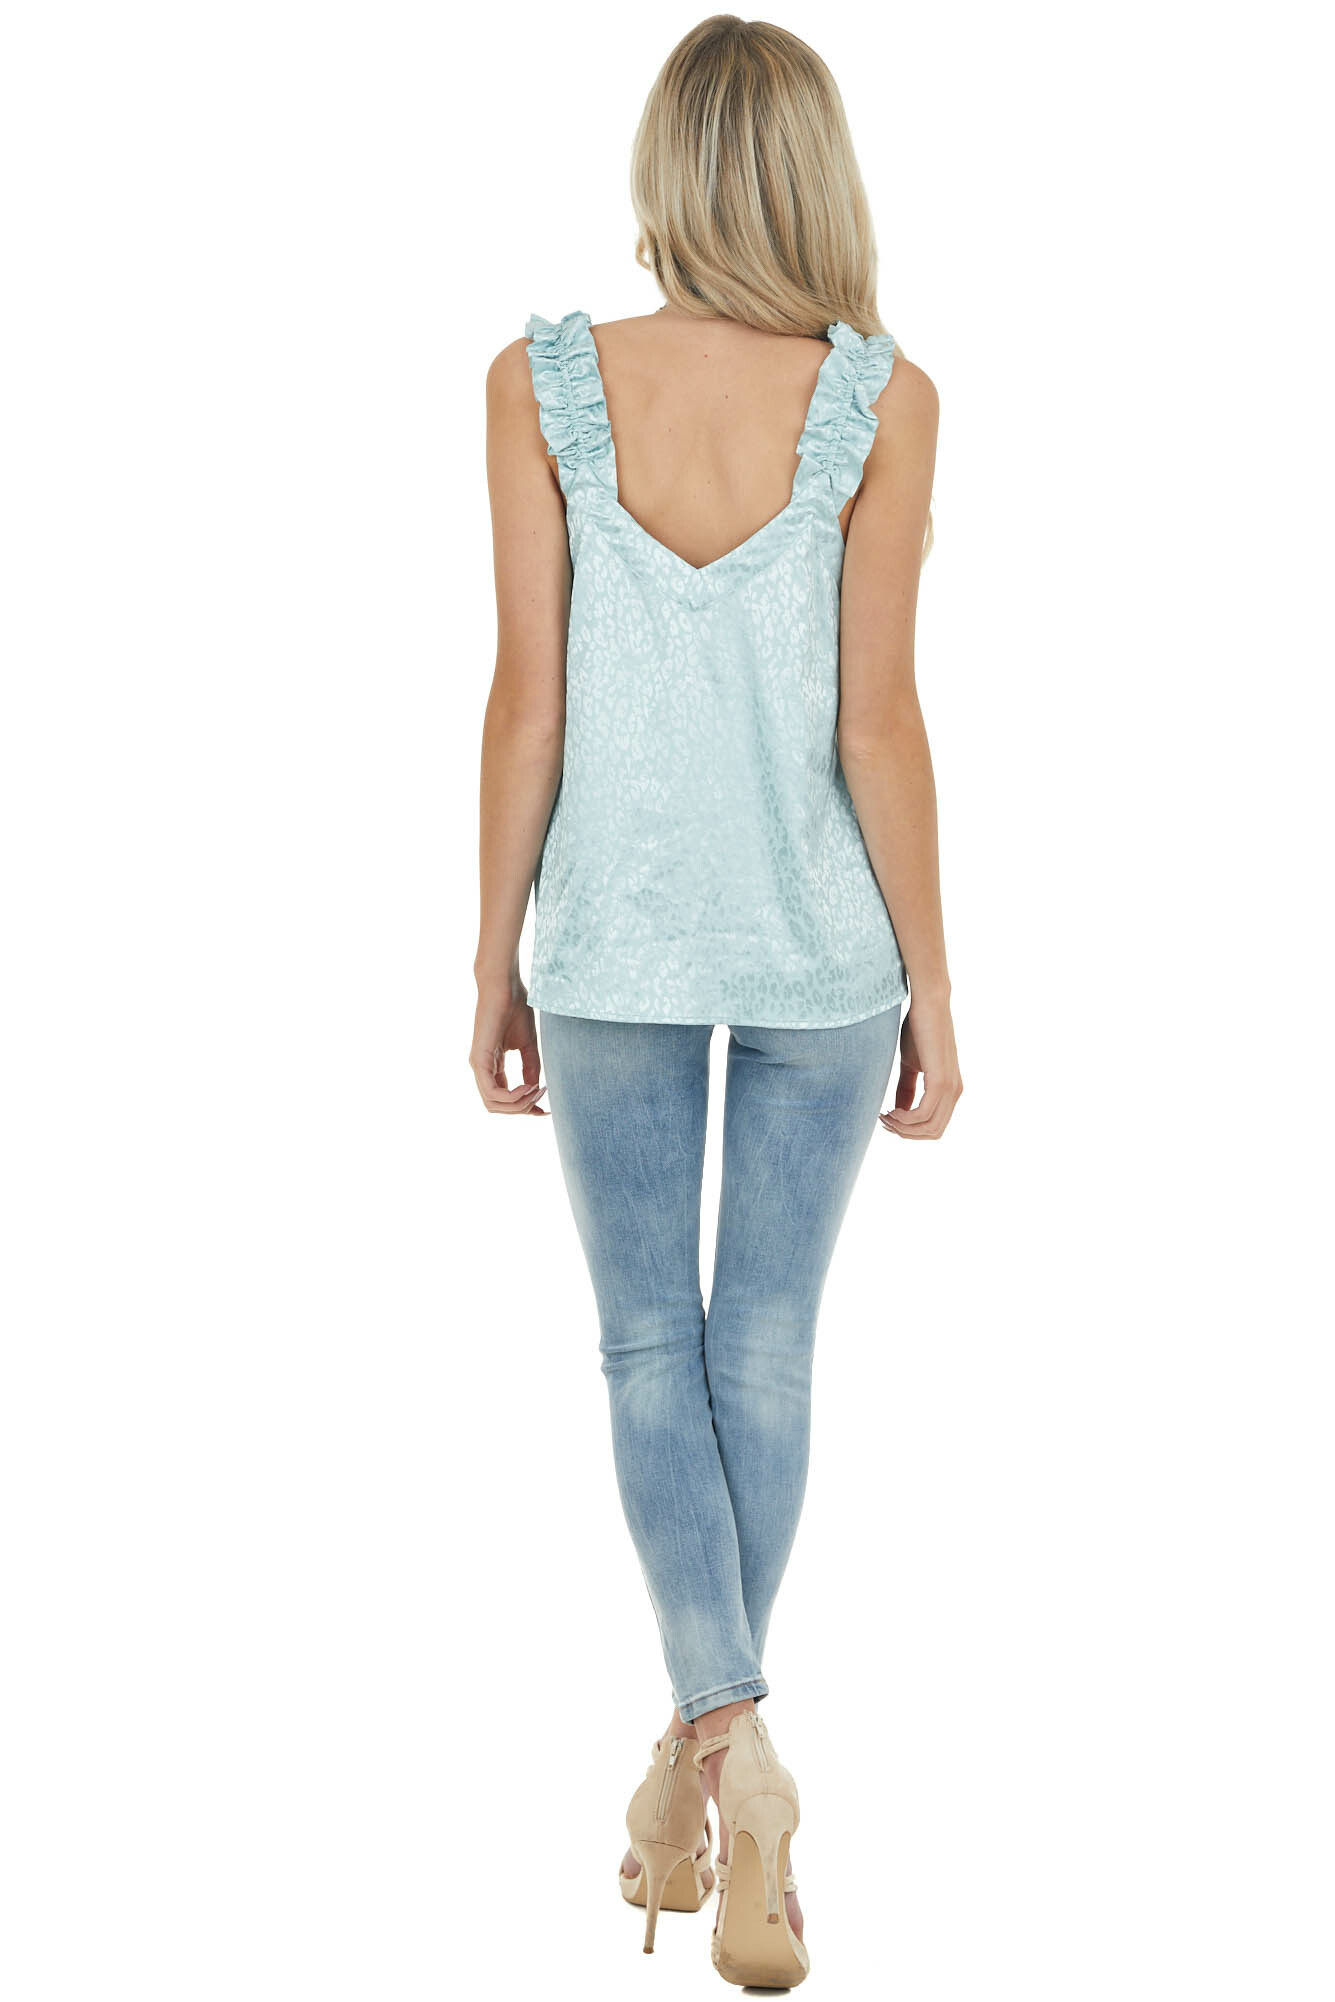 Sky Blue Leopard Print Tank Top with Elastic Ruffle Straps